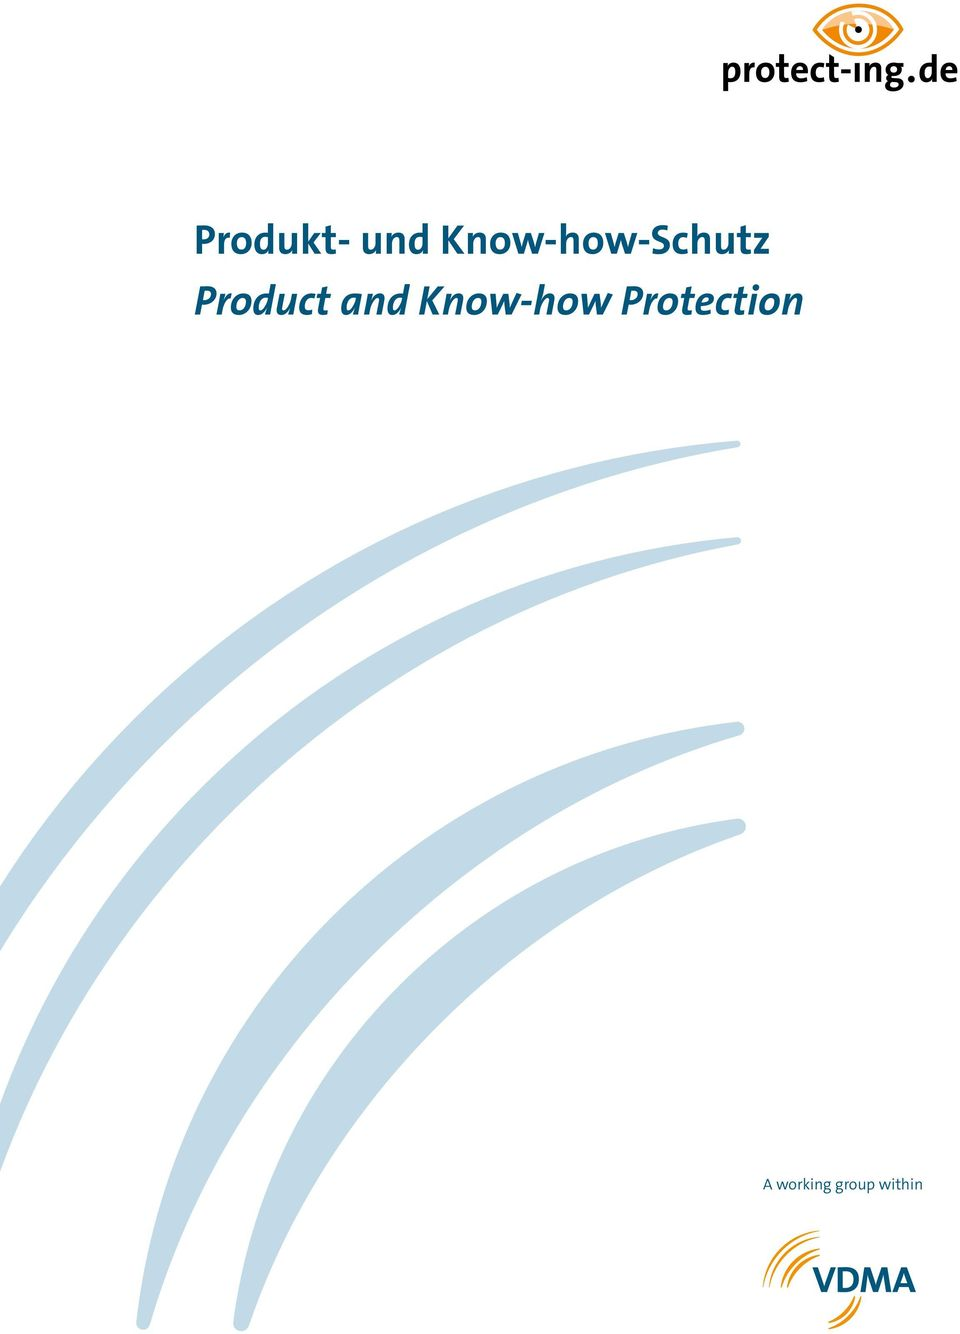 Product and Know-how